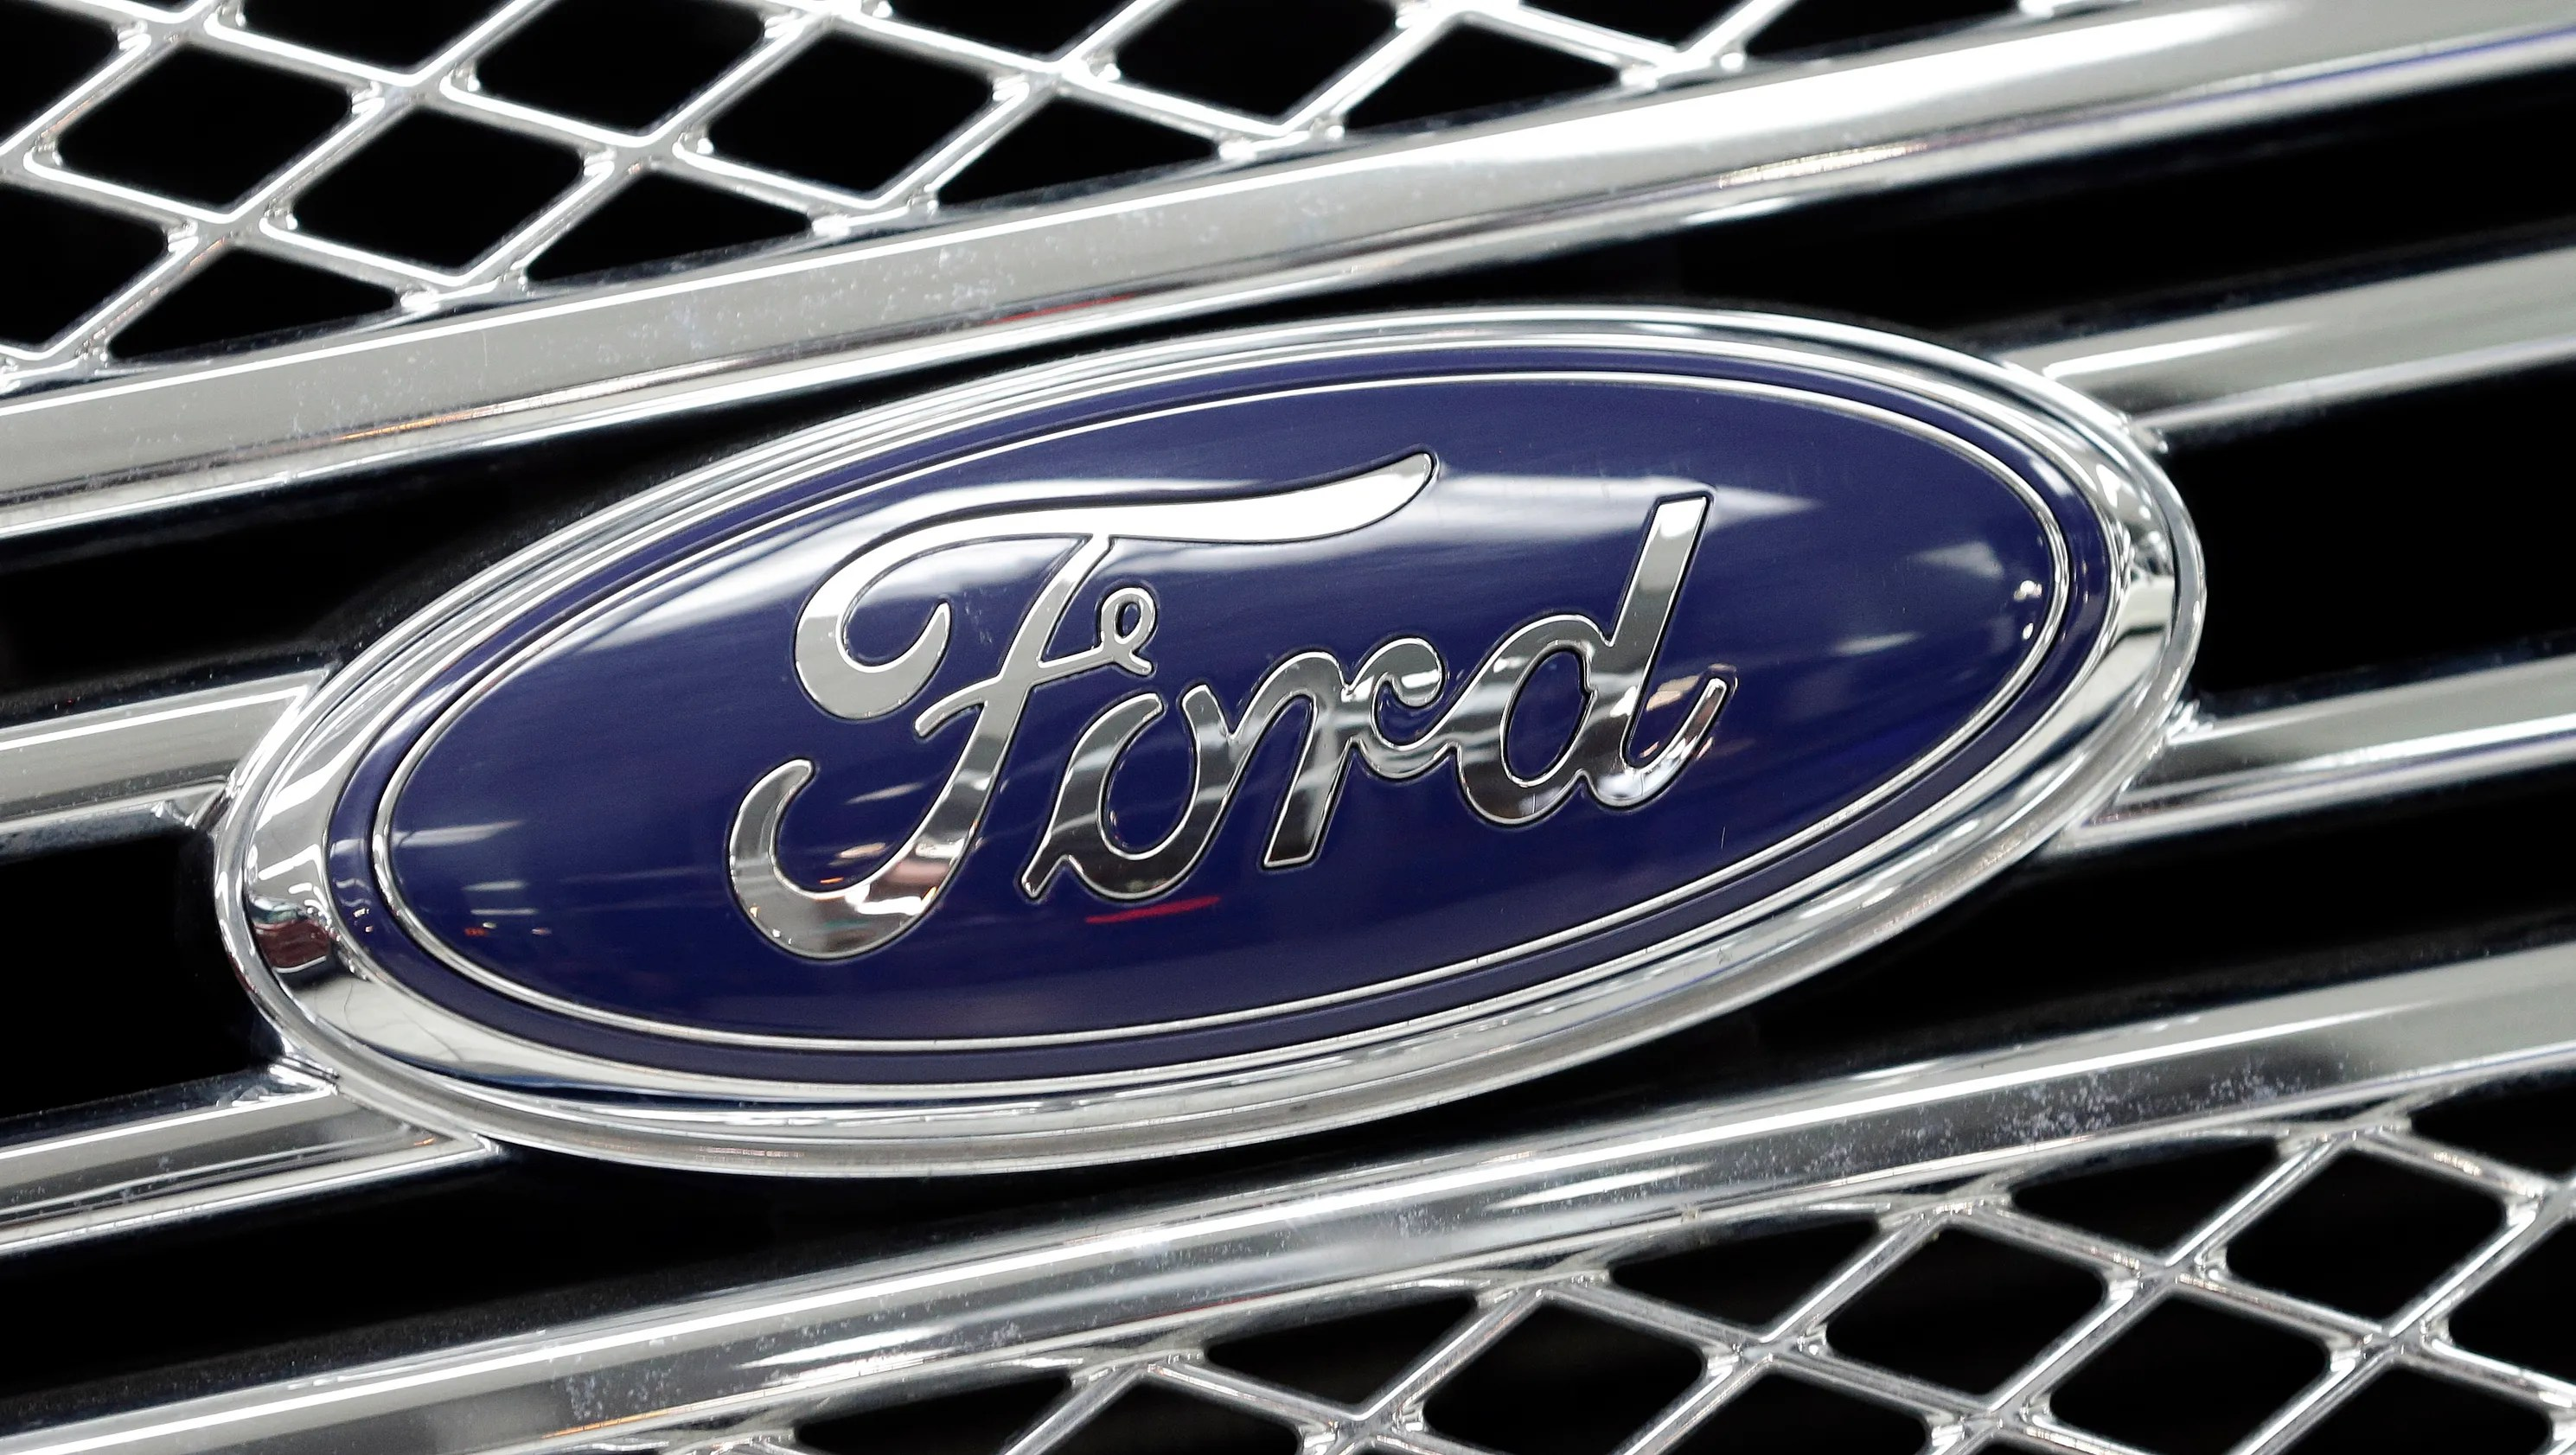 free ford logo 1995 jeep grand cherokee trailer wiring diagram uaw deal with motor 10 000 at signing 9b promised